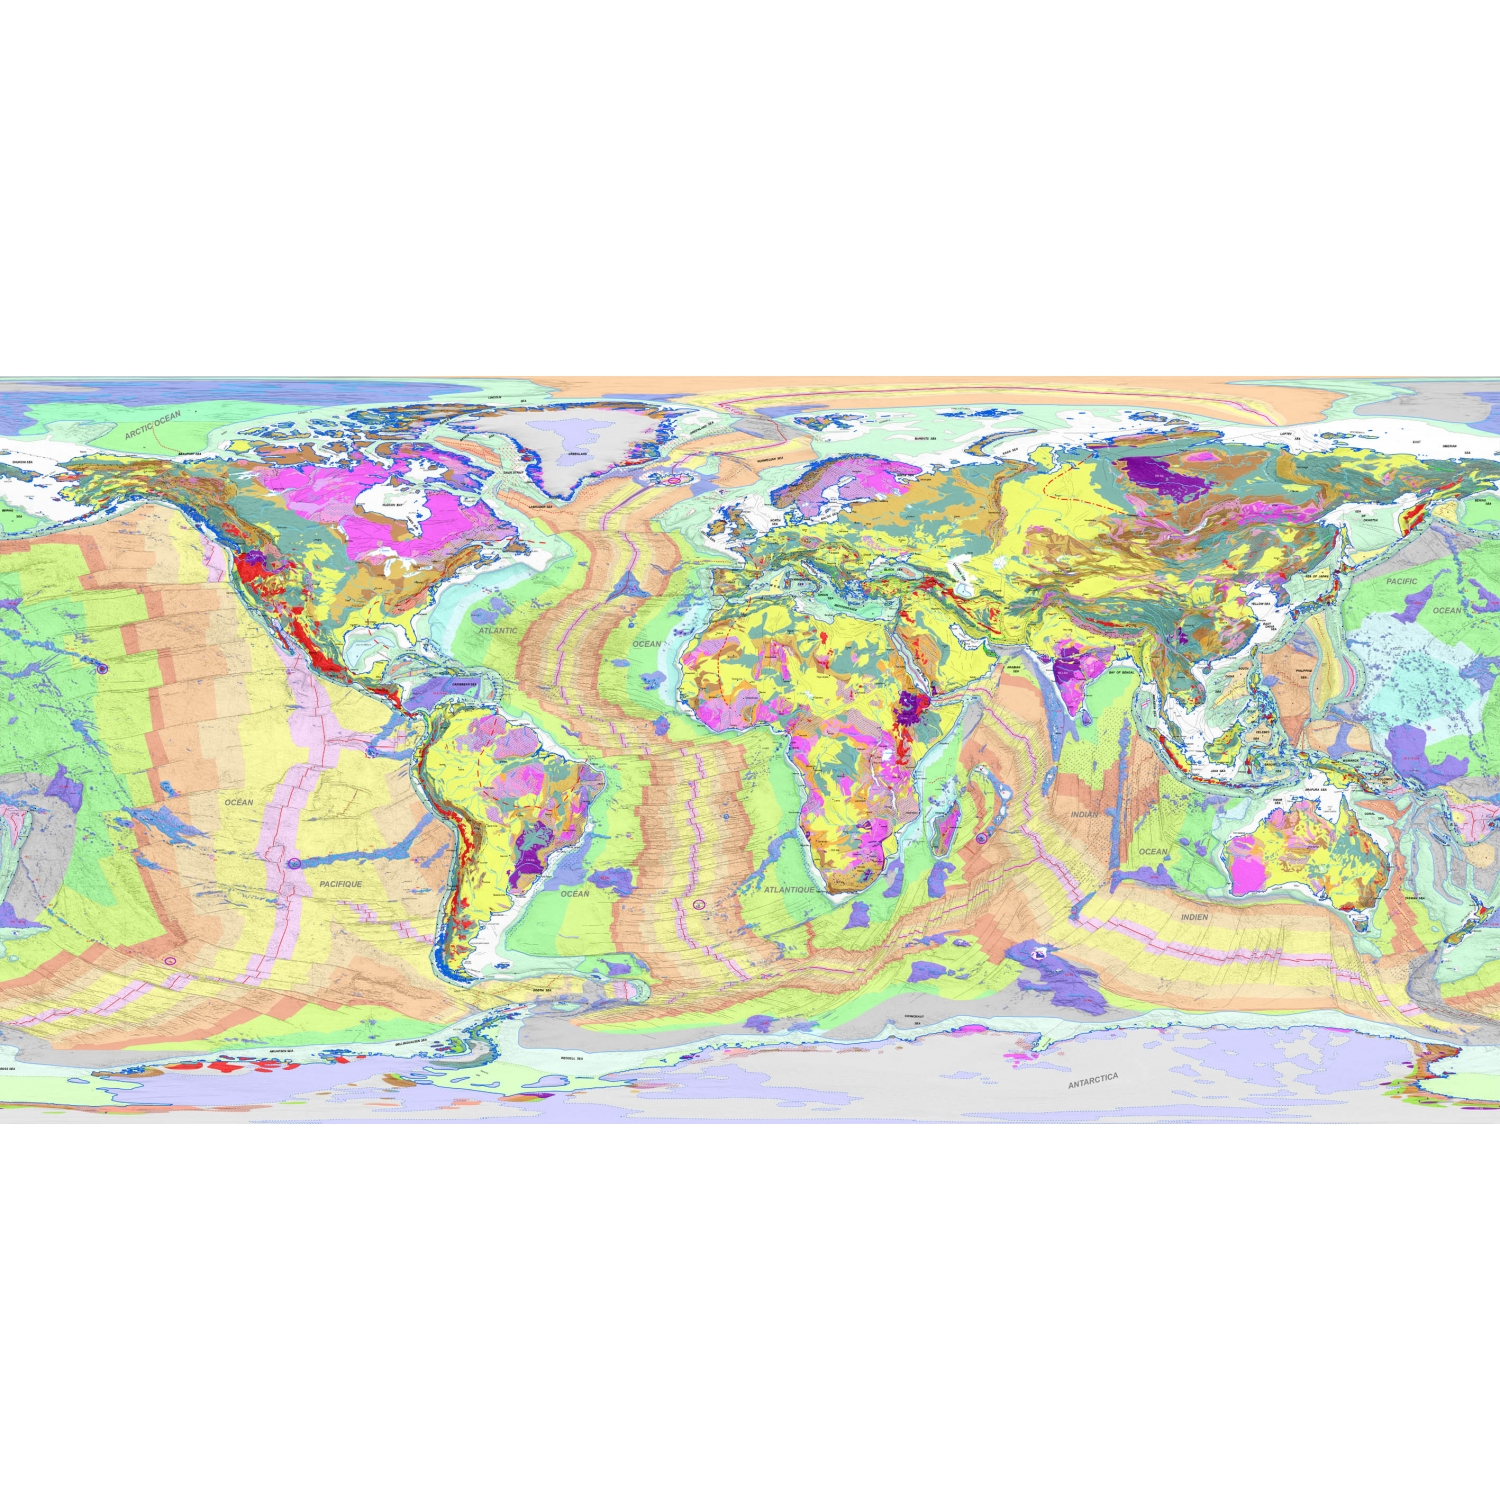 GIS Database of the Geological Map of the World at 1/35 000 ... on legal world map, technology world map, goo world map, ecology world map, maps world map, infrastructure world map, editable world map, gui world map, sas world map, design world map, finance world map, esri world map, autocad world map, gps world map, esri street data map, oas world map, detailed world map, engineering world map, mat world map, anthropology world map,